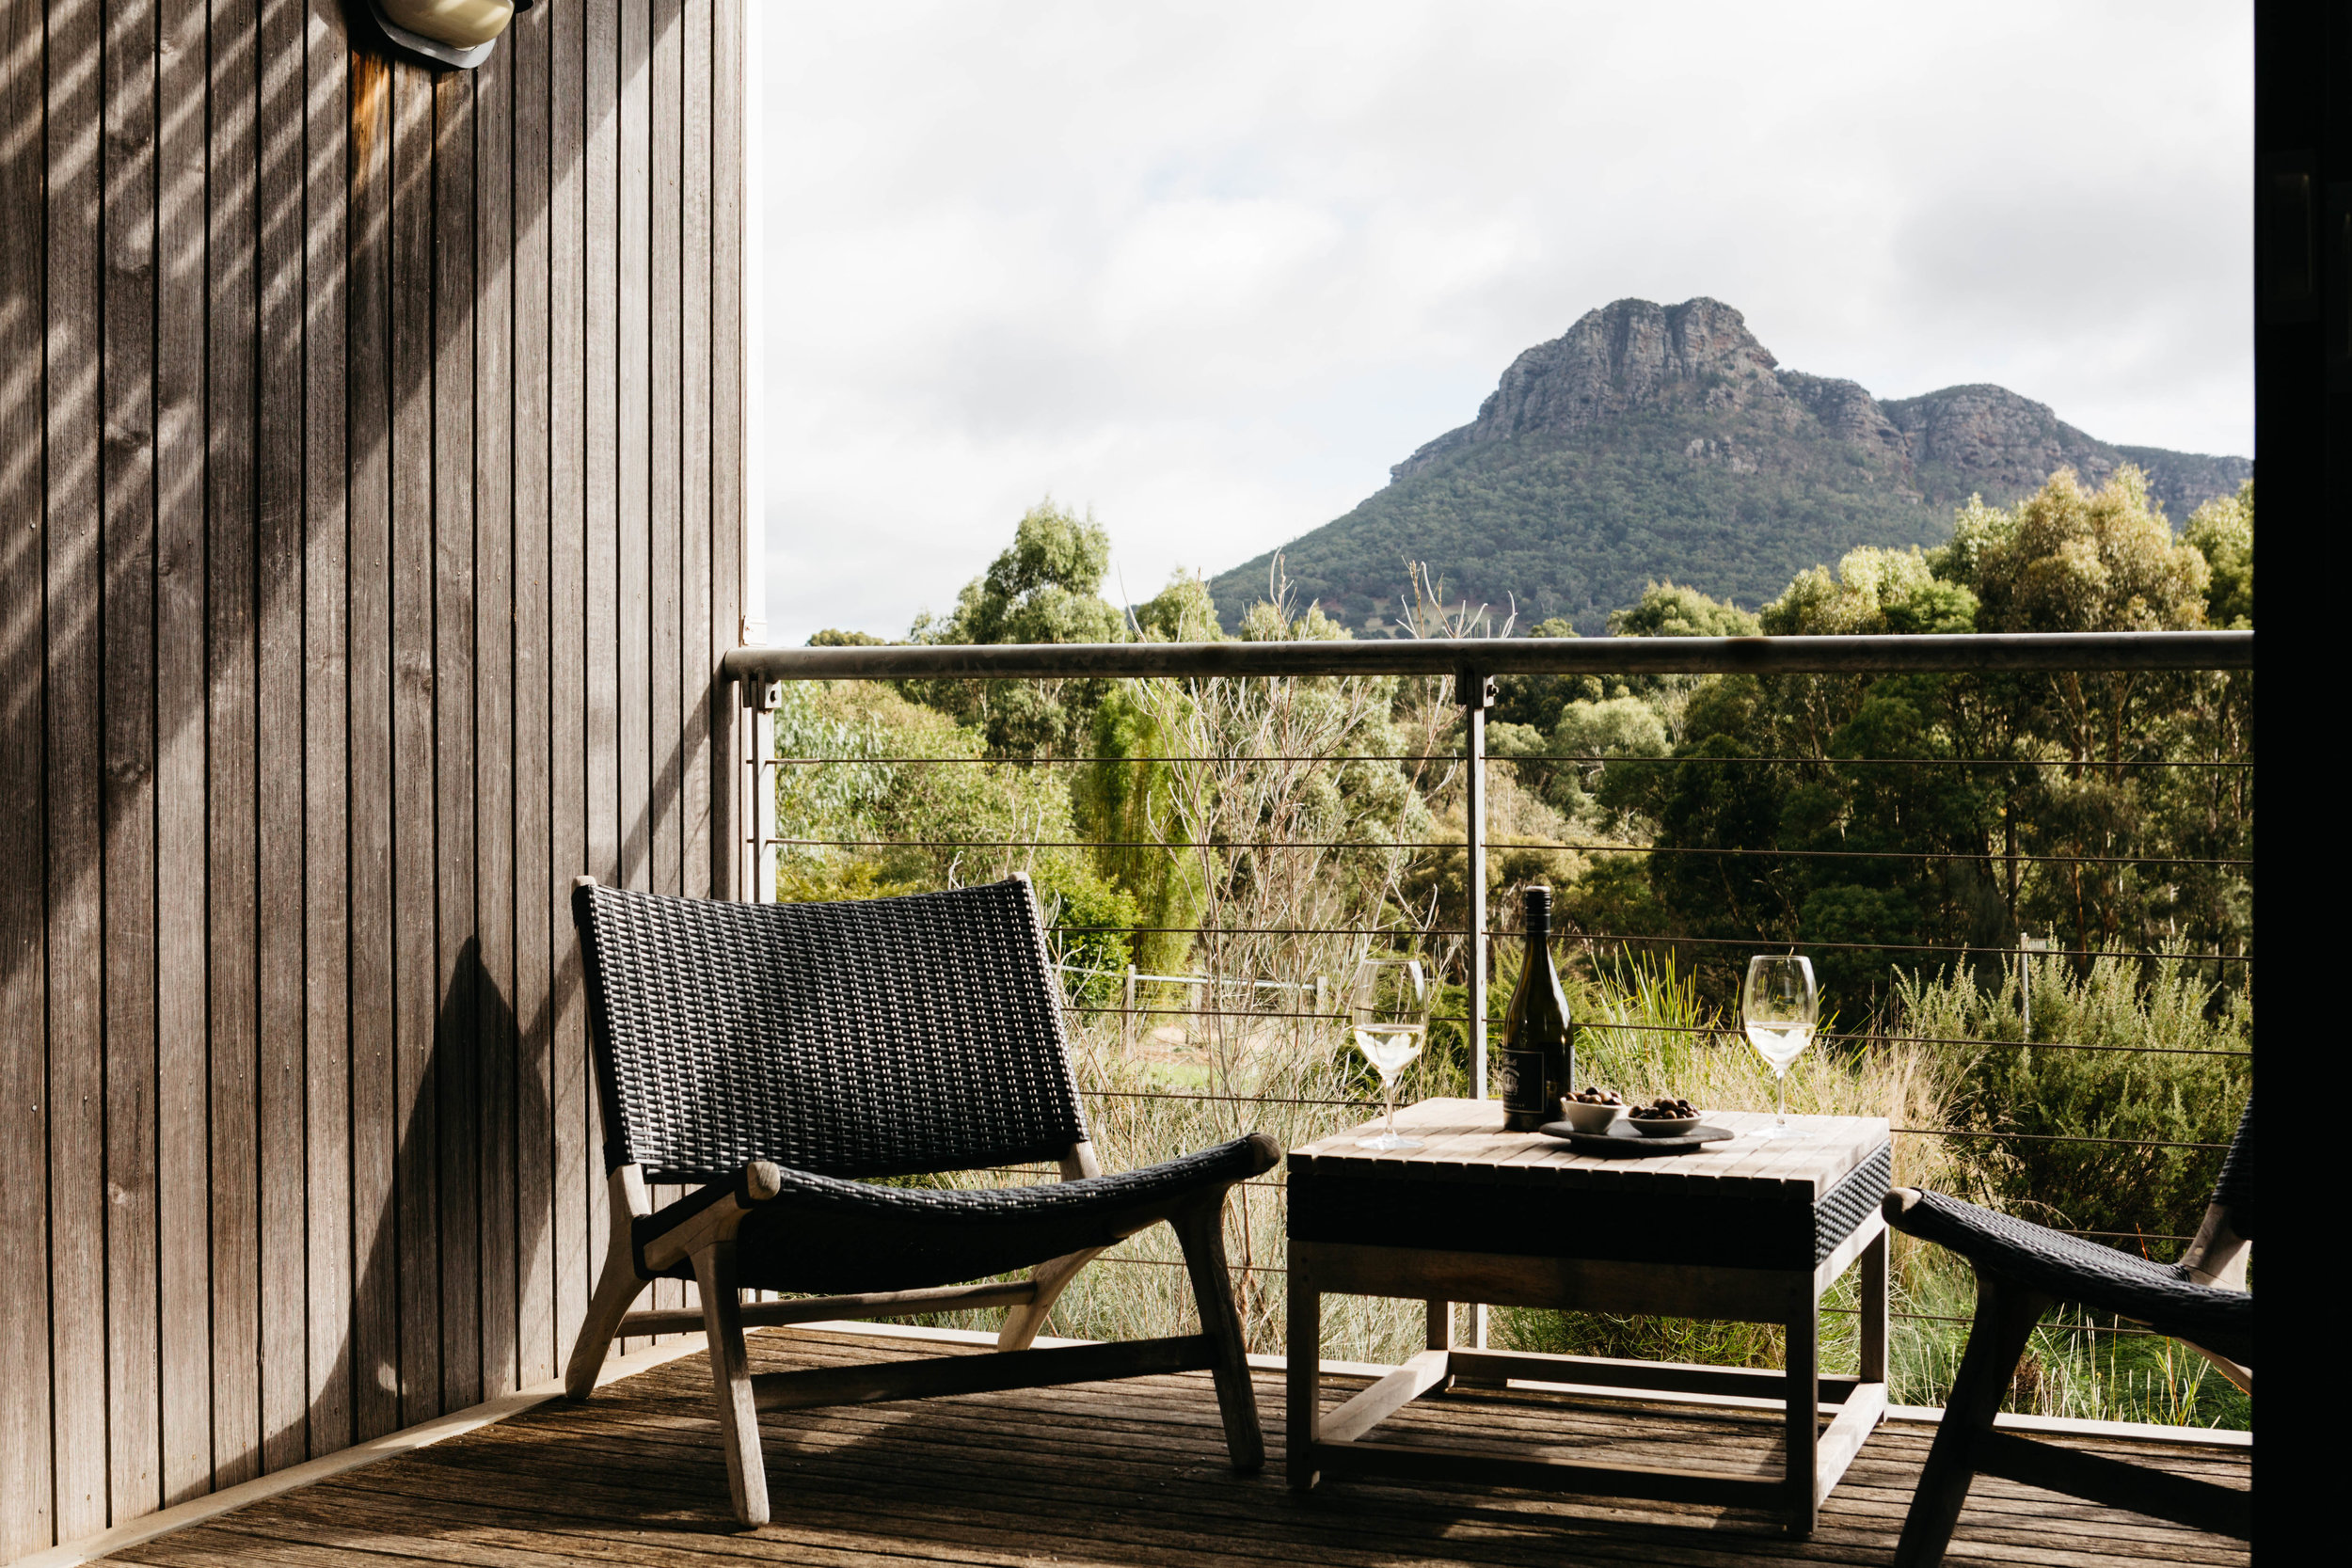 Deluxe Mountain View Room Balcony - Royal Mail Hotel - Emily Weaving.jpg